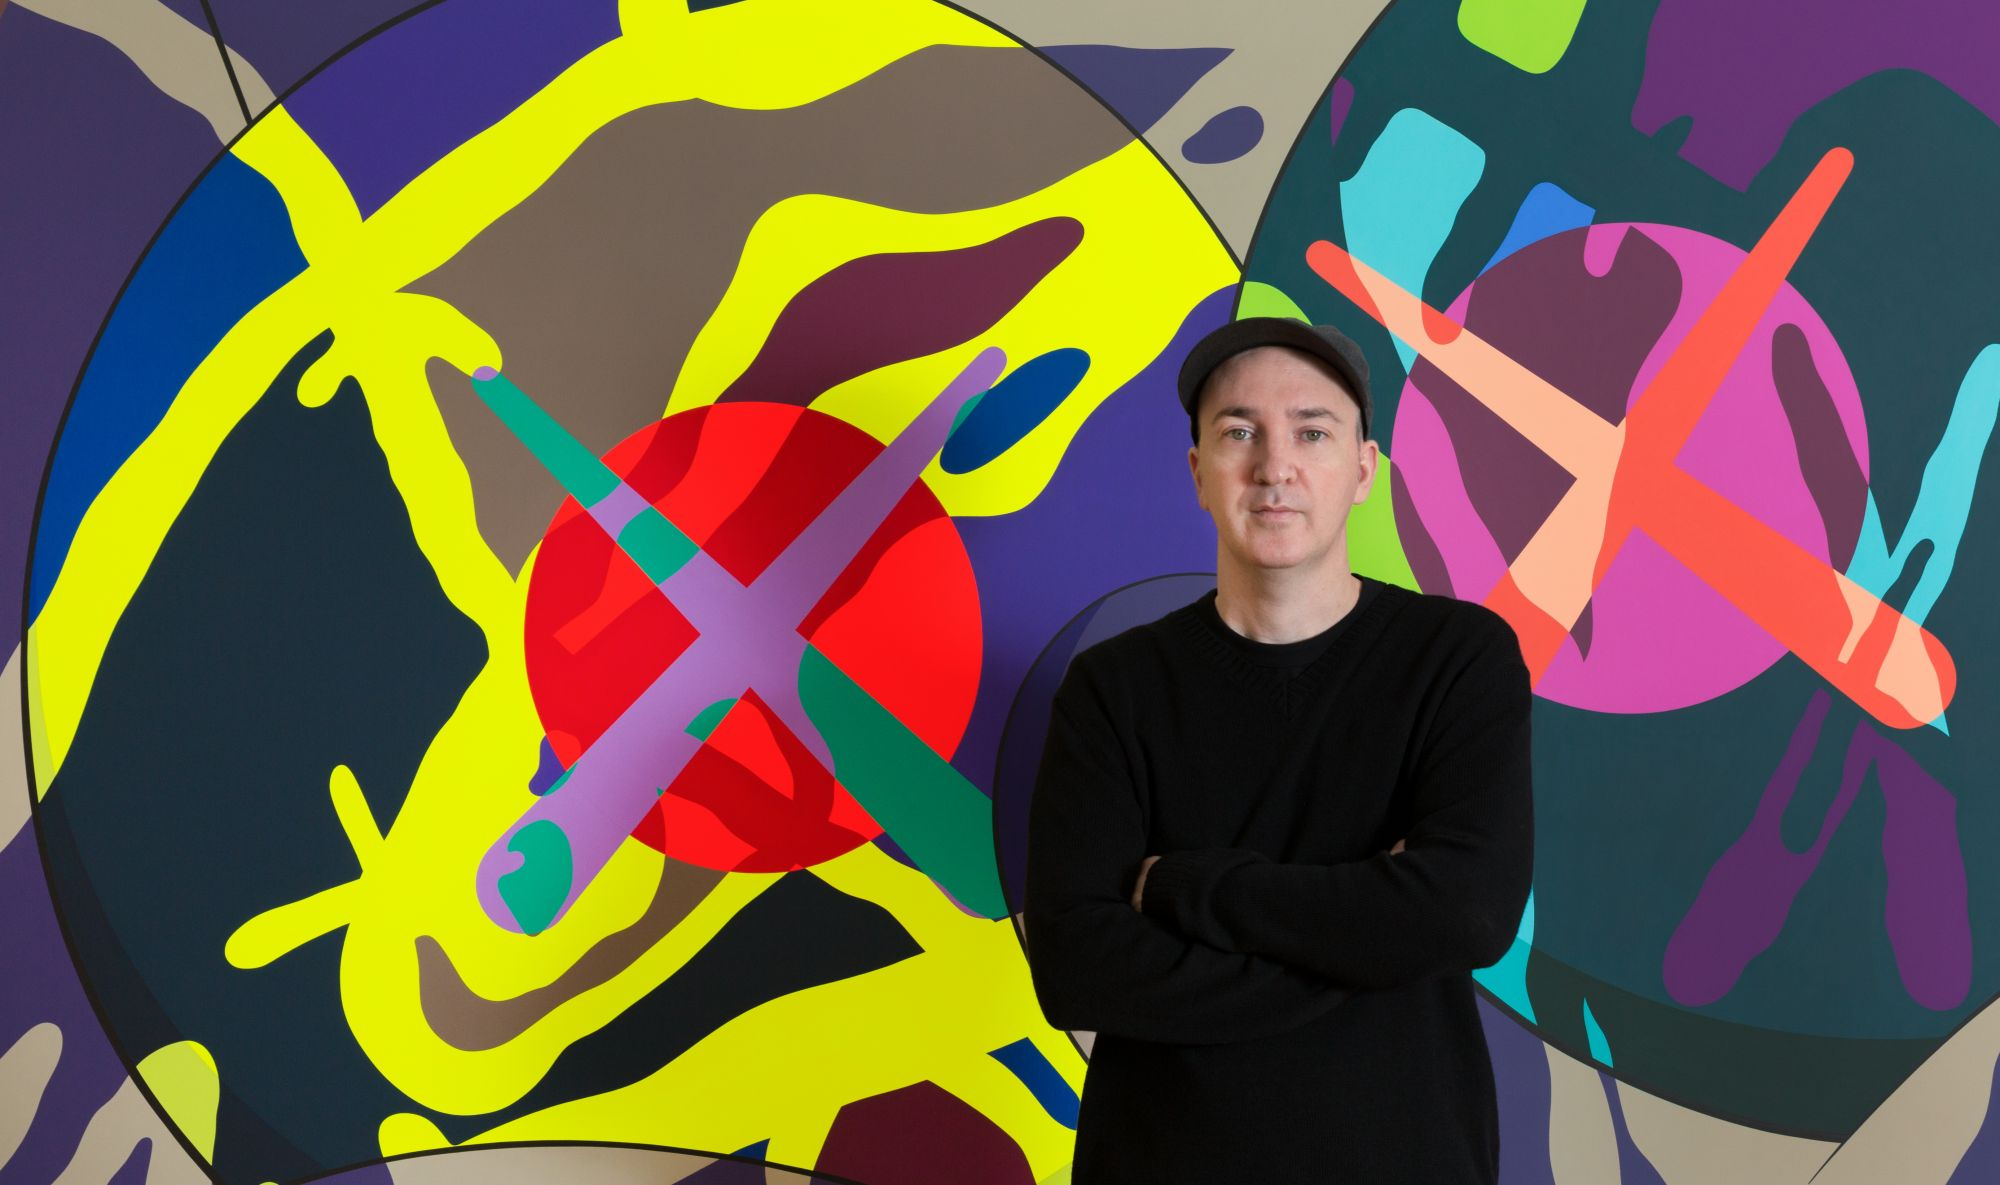 KAWS: From Graffiti To Galerie Perrotin